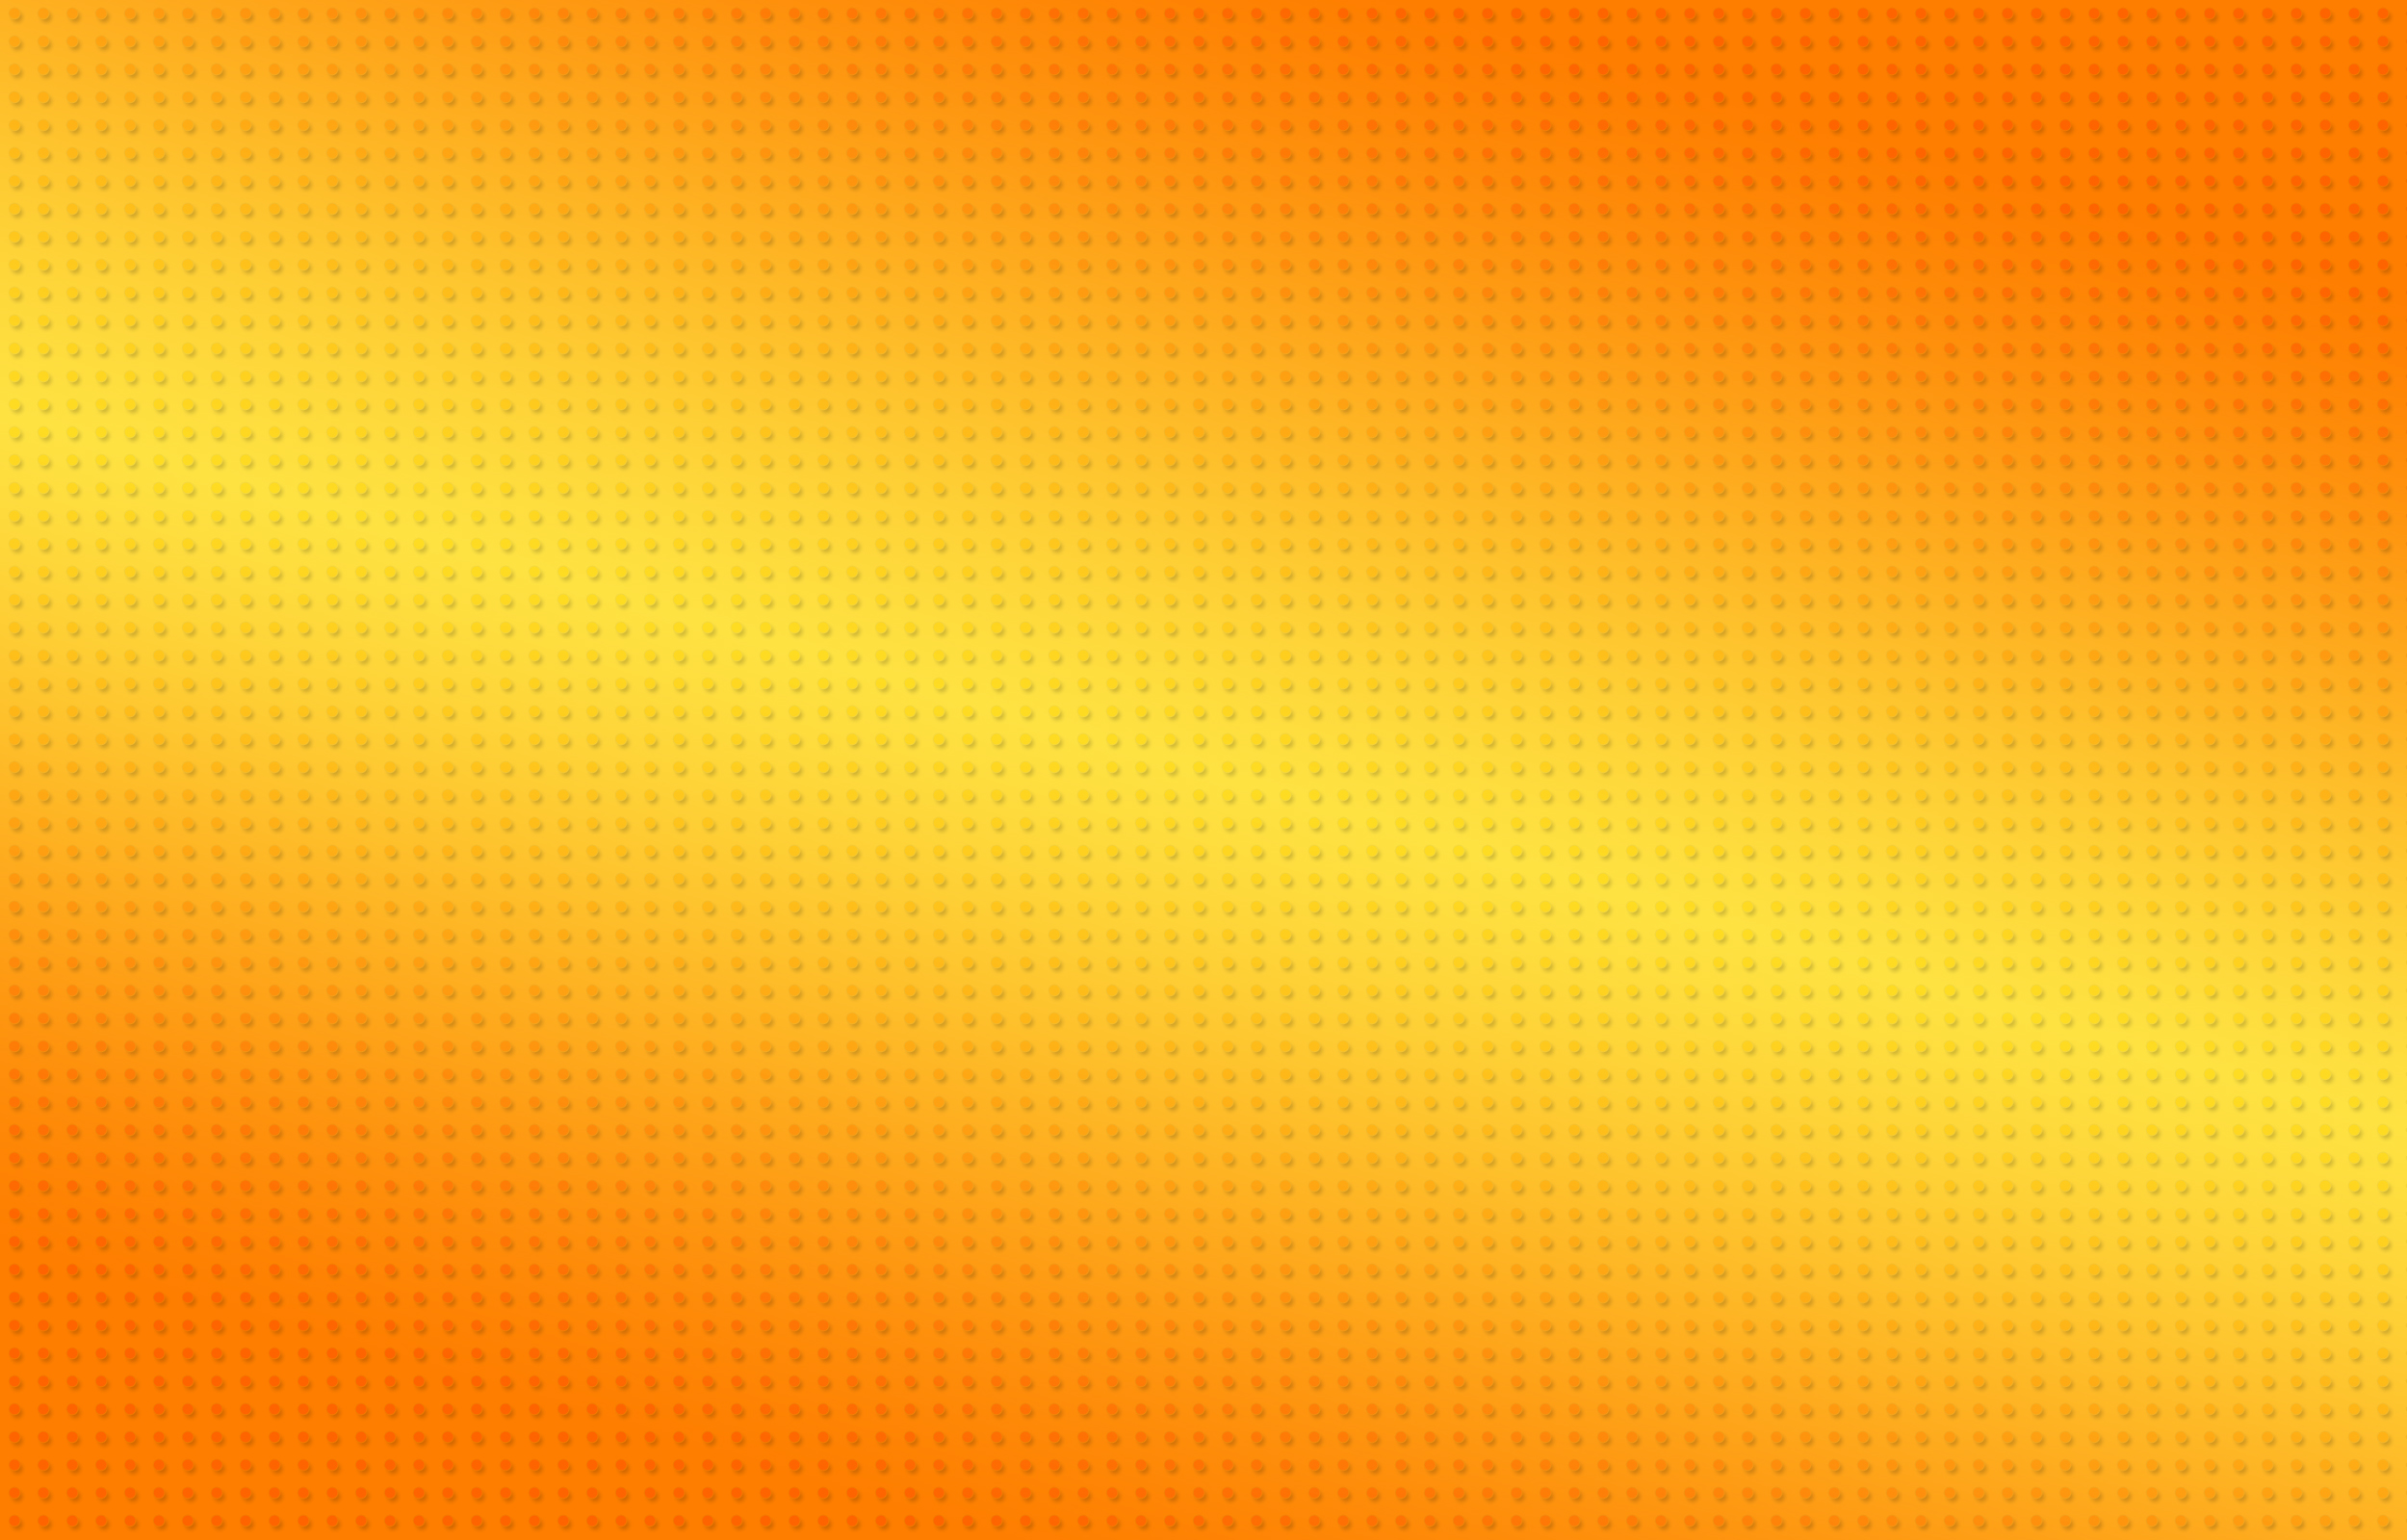 4 Orange HD Wallpapers | Backgrounds - Wallpaper Abyss